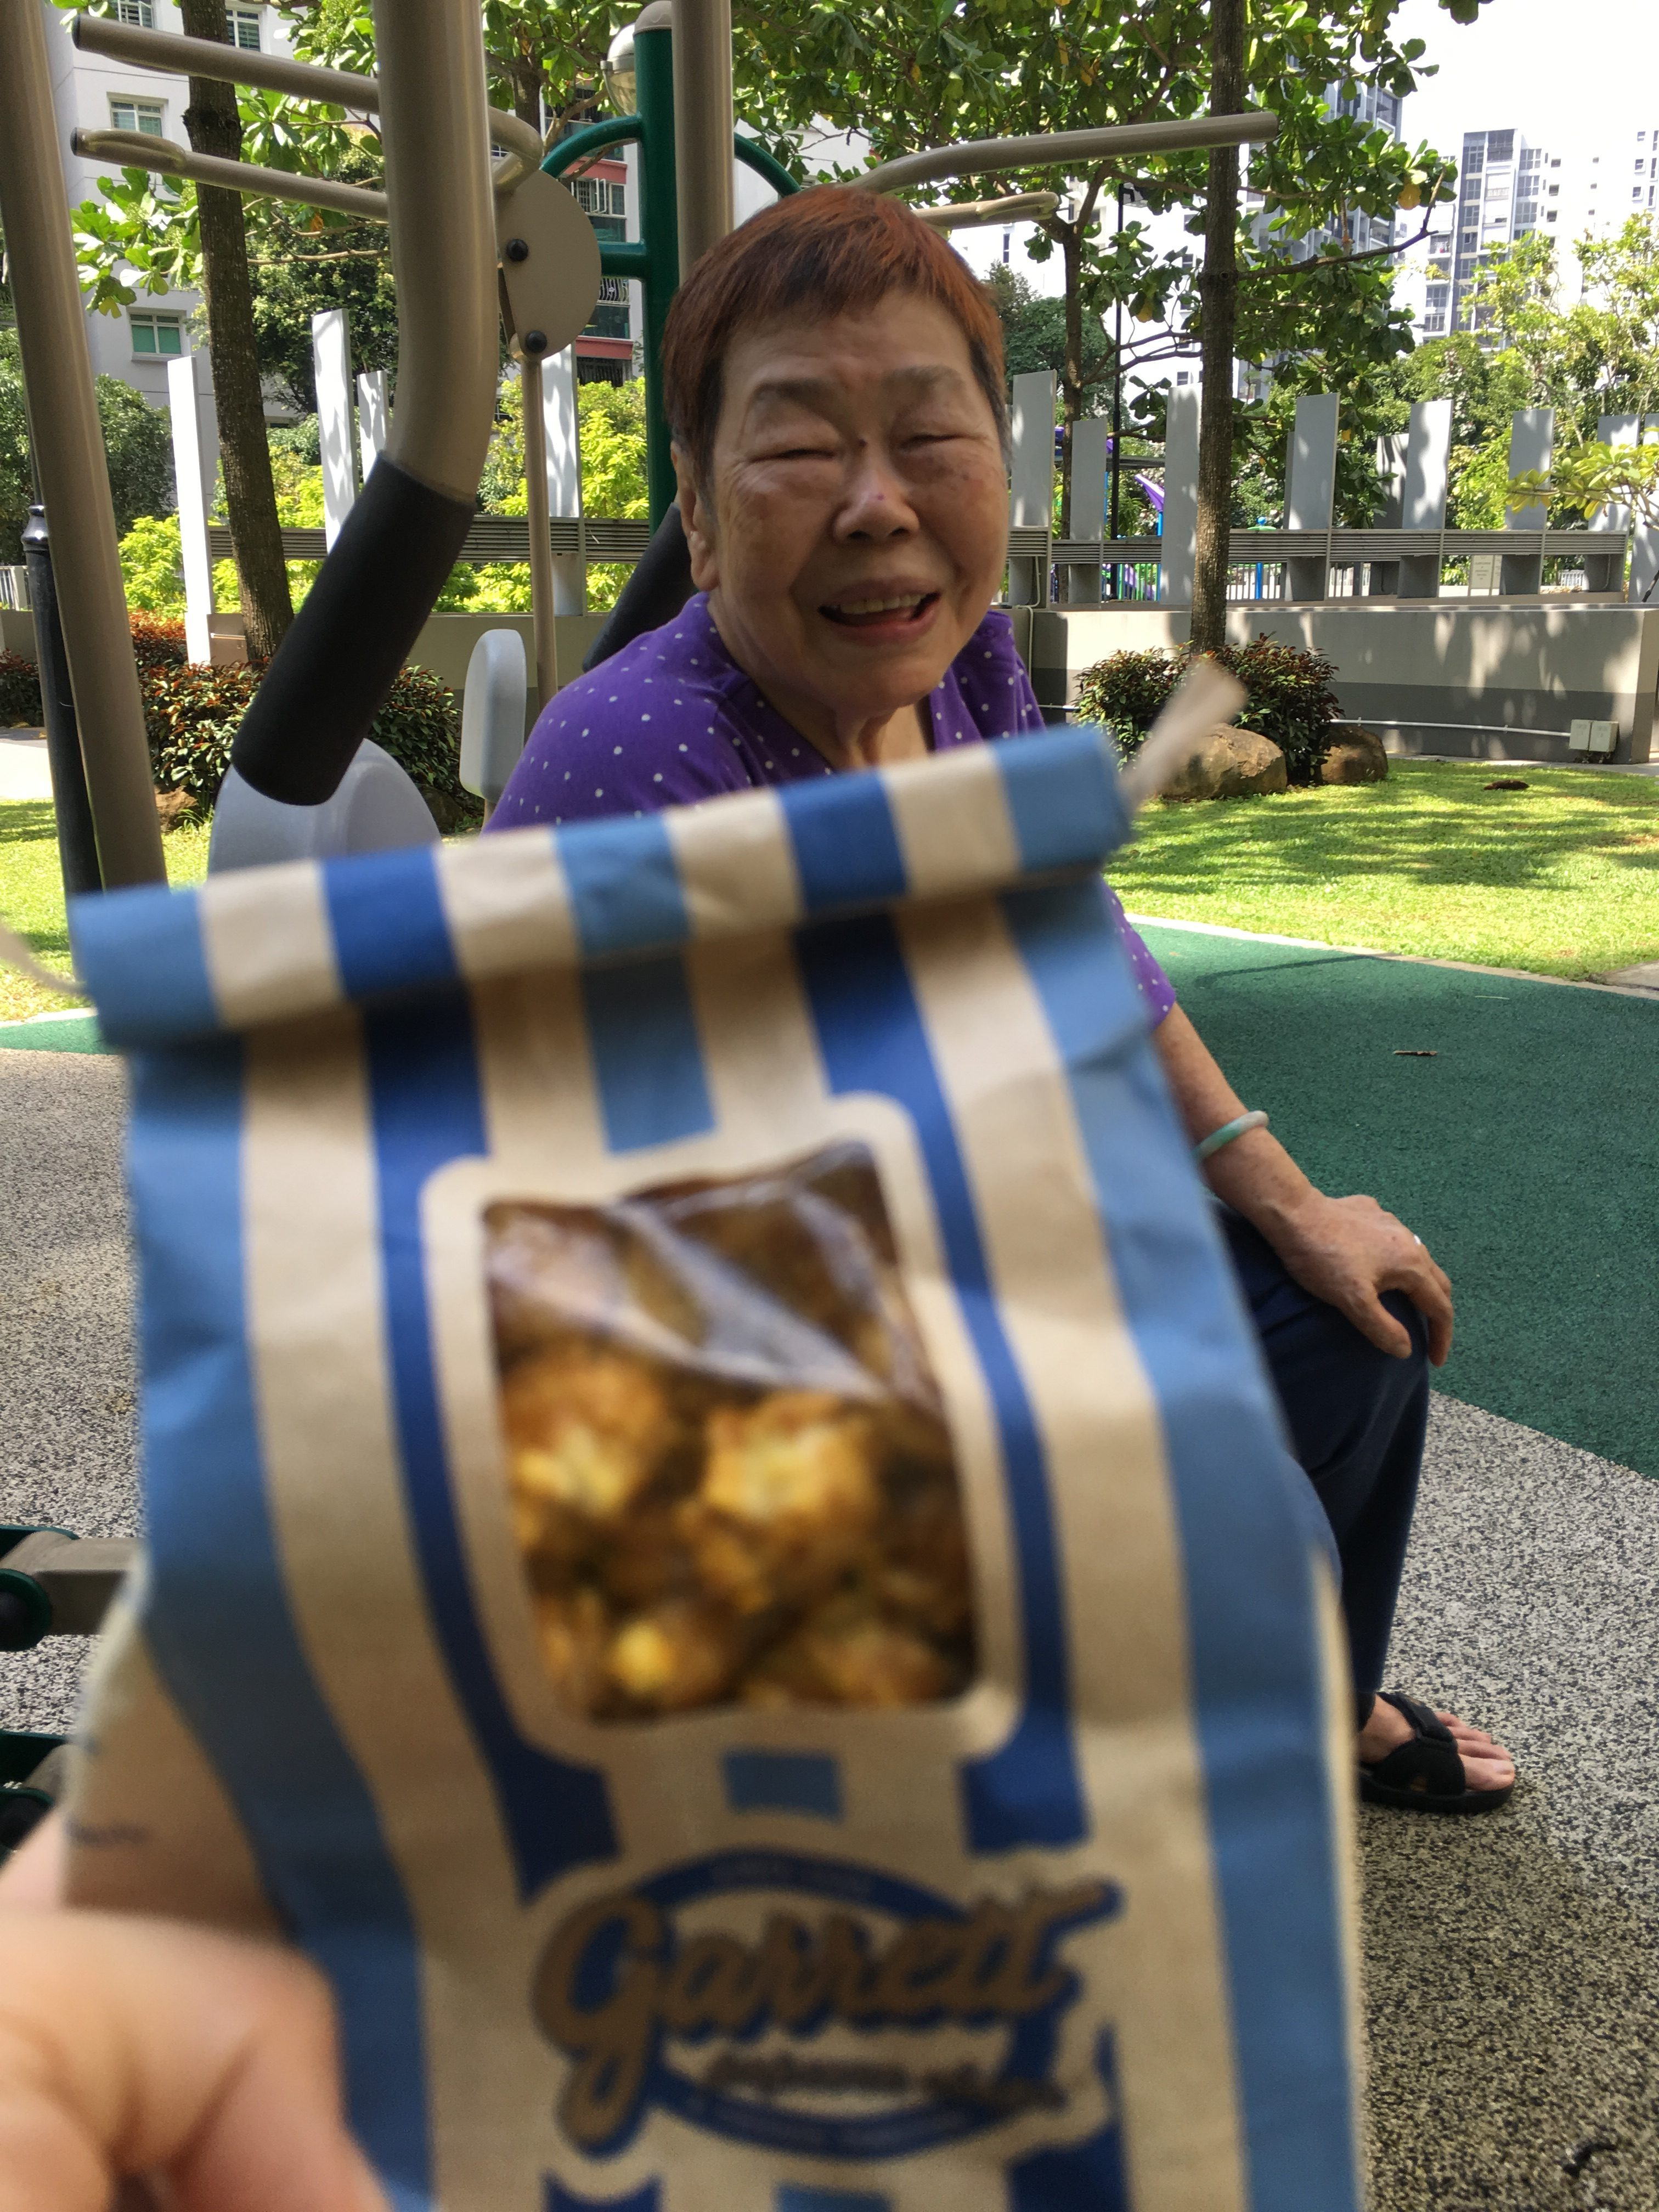 Sugar speeds up dementia. My grandma's experience with sugar and the effect on her memory and moods.